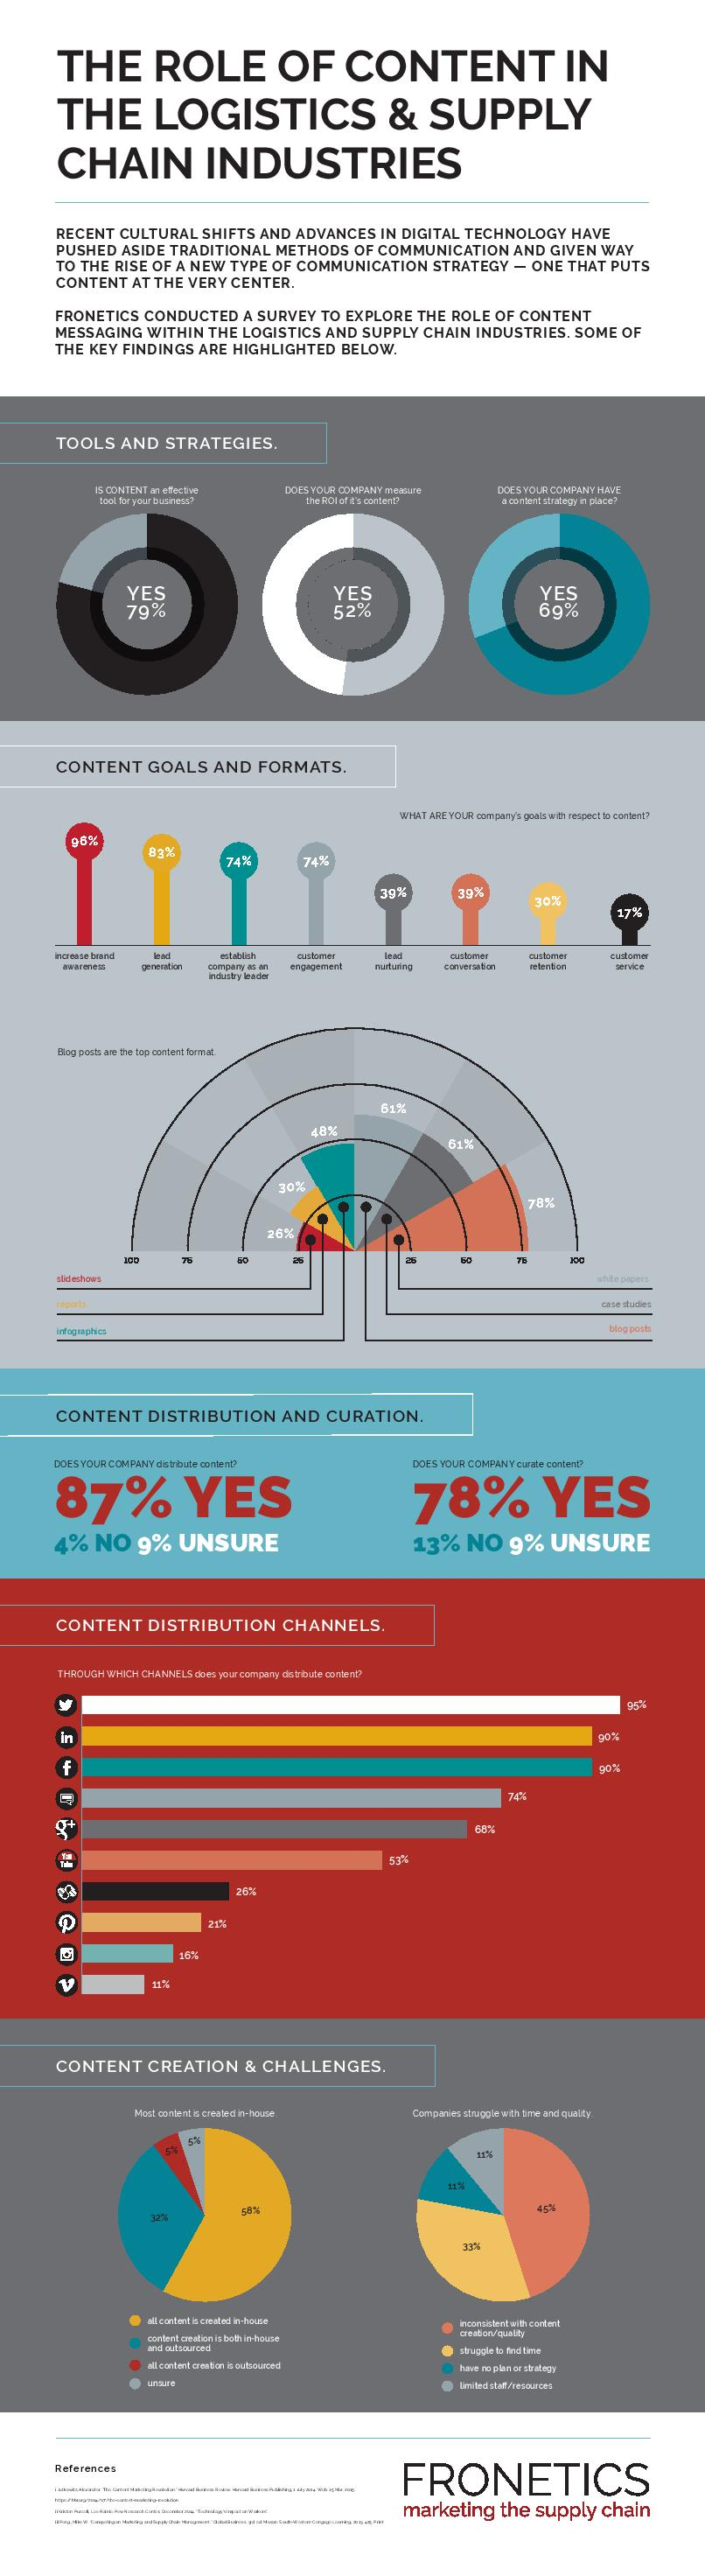 role of content in the logistics and supply chain industries infographic